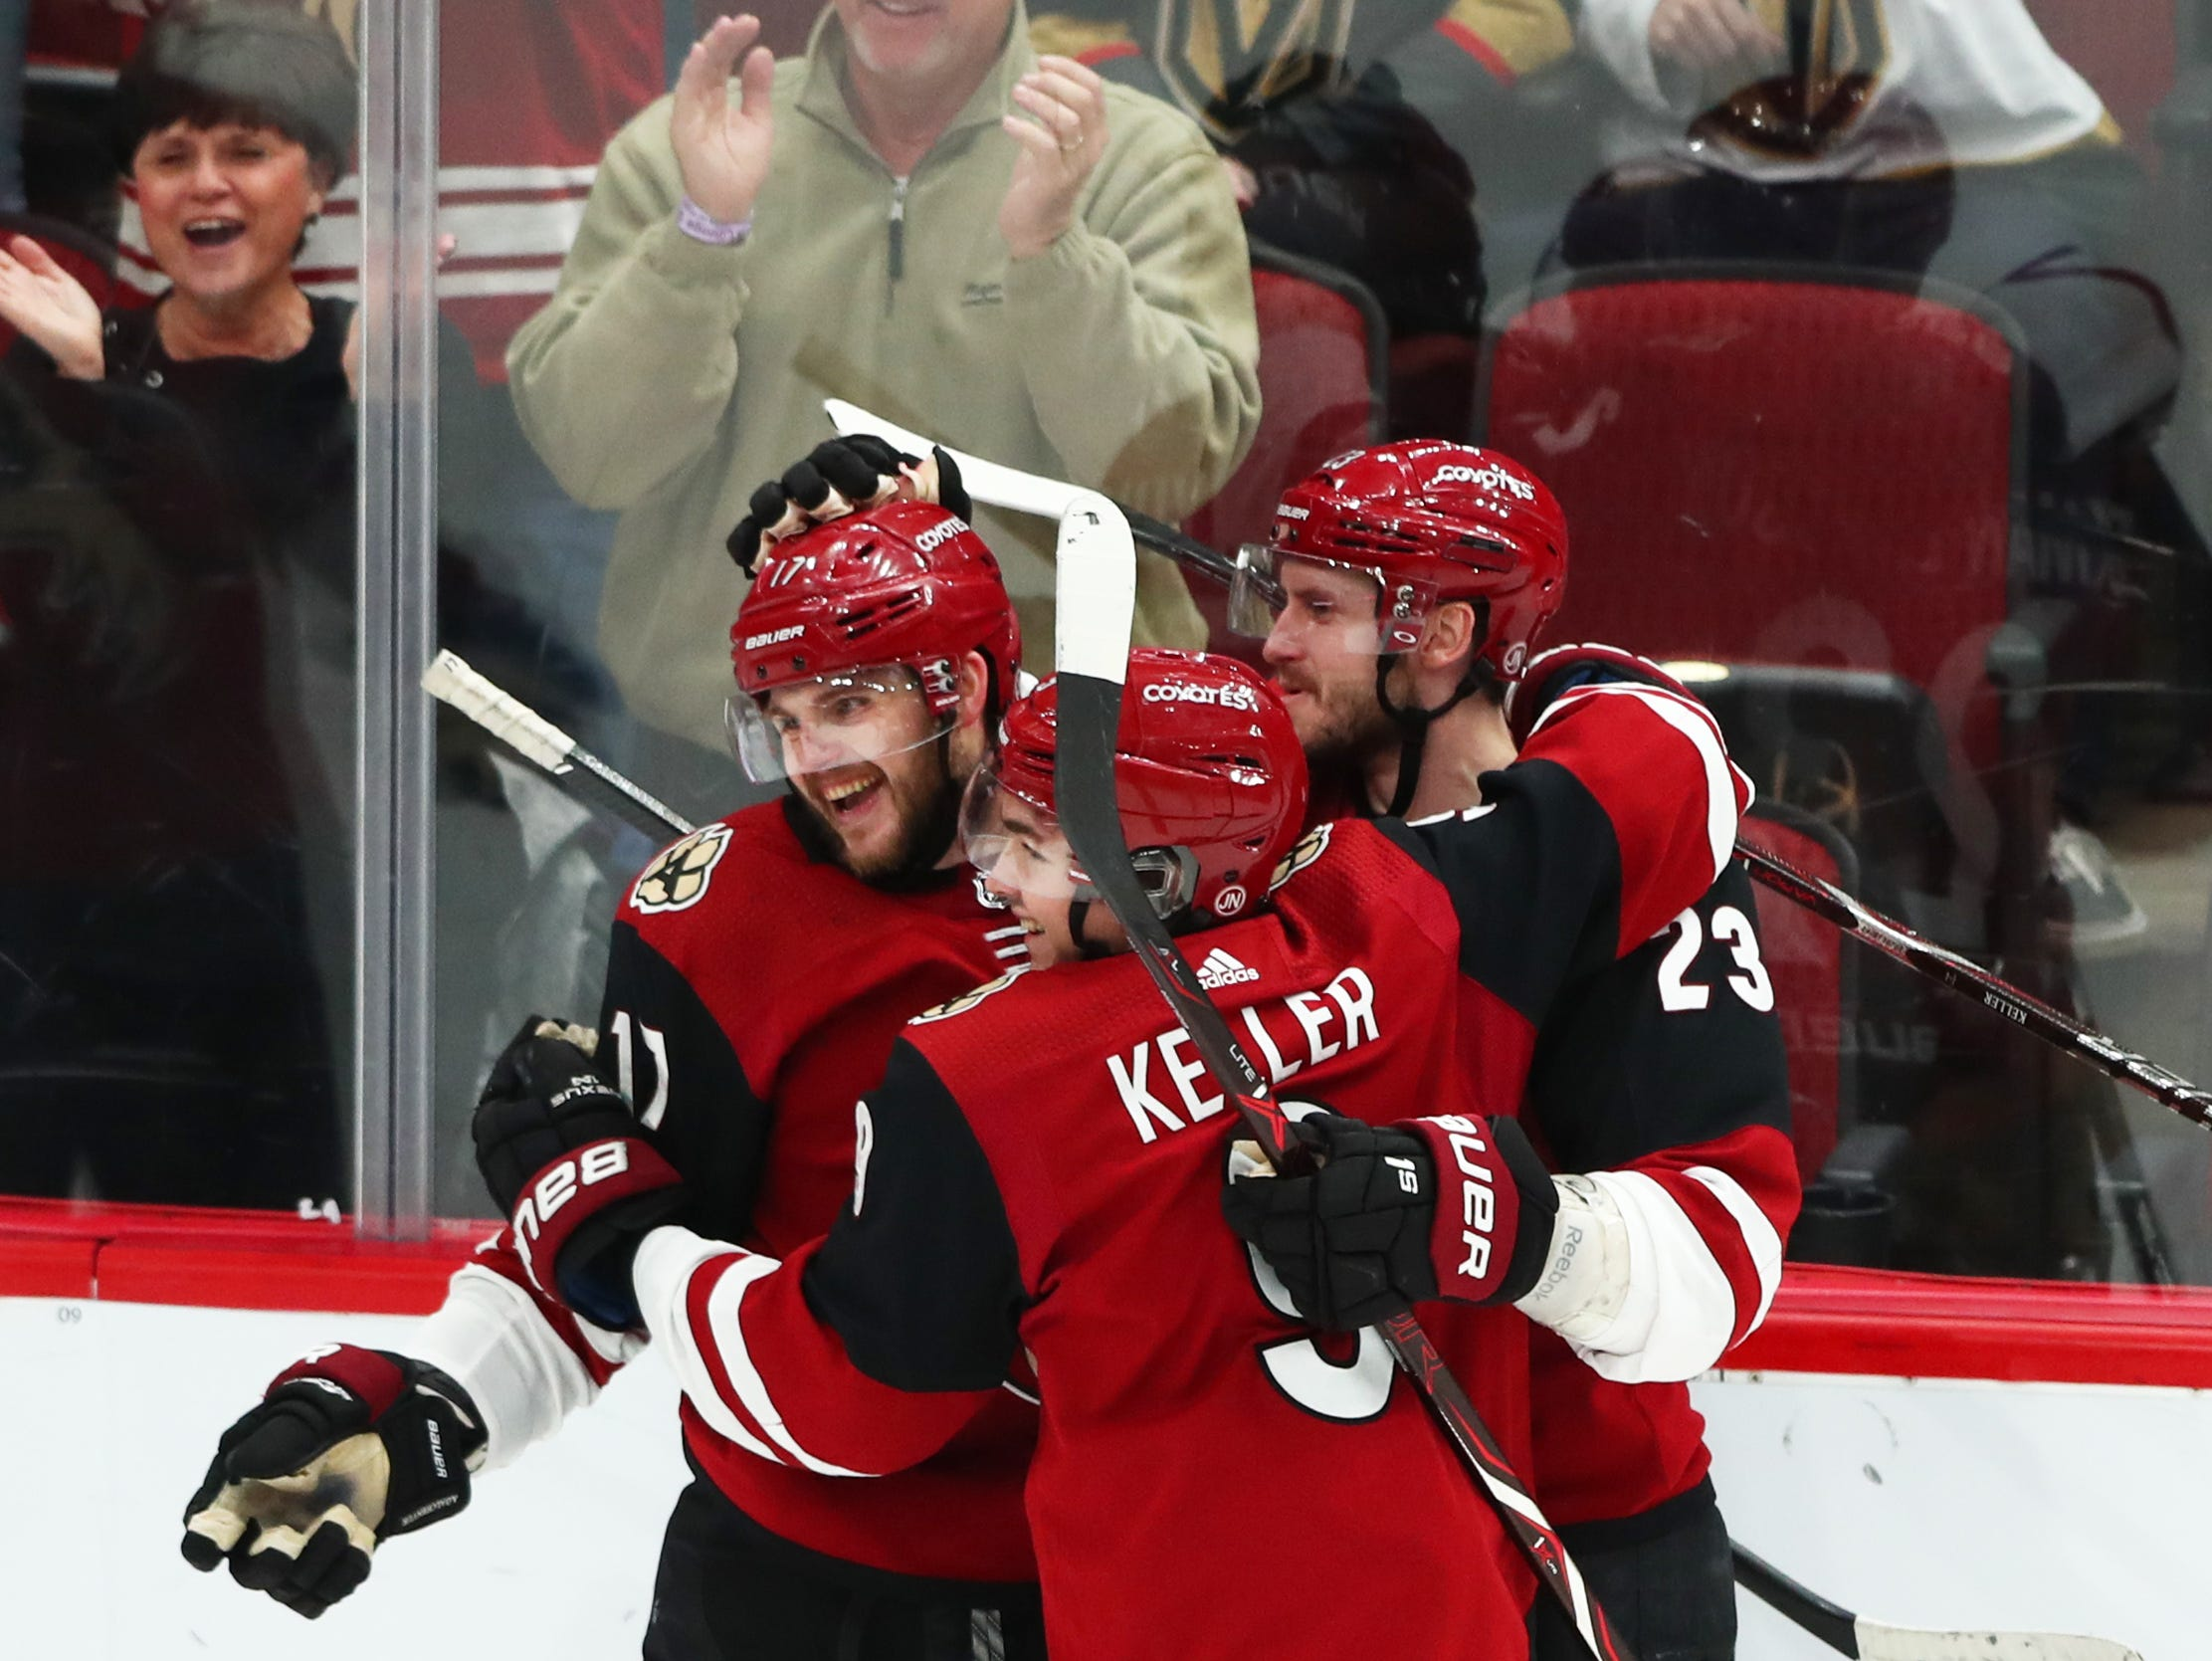 Dec 30, 2018; Glendale, AZ, USA; Arizona Coyotes center Alex Galchenyuk (17) celebrates with teammates Clayton Keller (9) and Oliver Ekman-Larsson (23) after scoring a second period goal against the Vegas Golden Knights at Gila River Arena. Mandatory Credit: Mark J. Rebilas-USA TODAY Sports